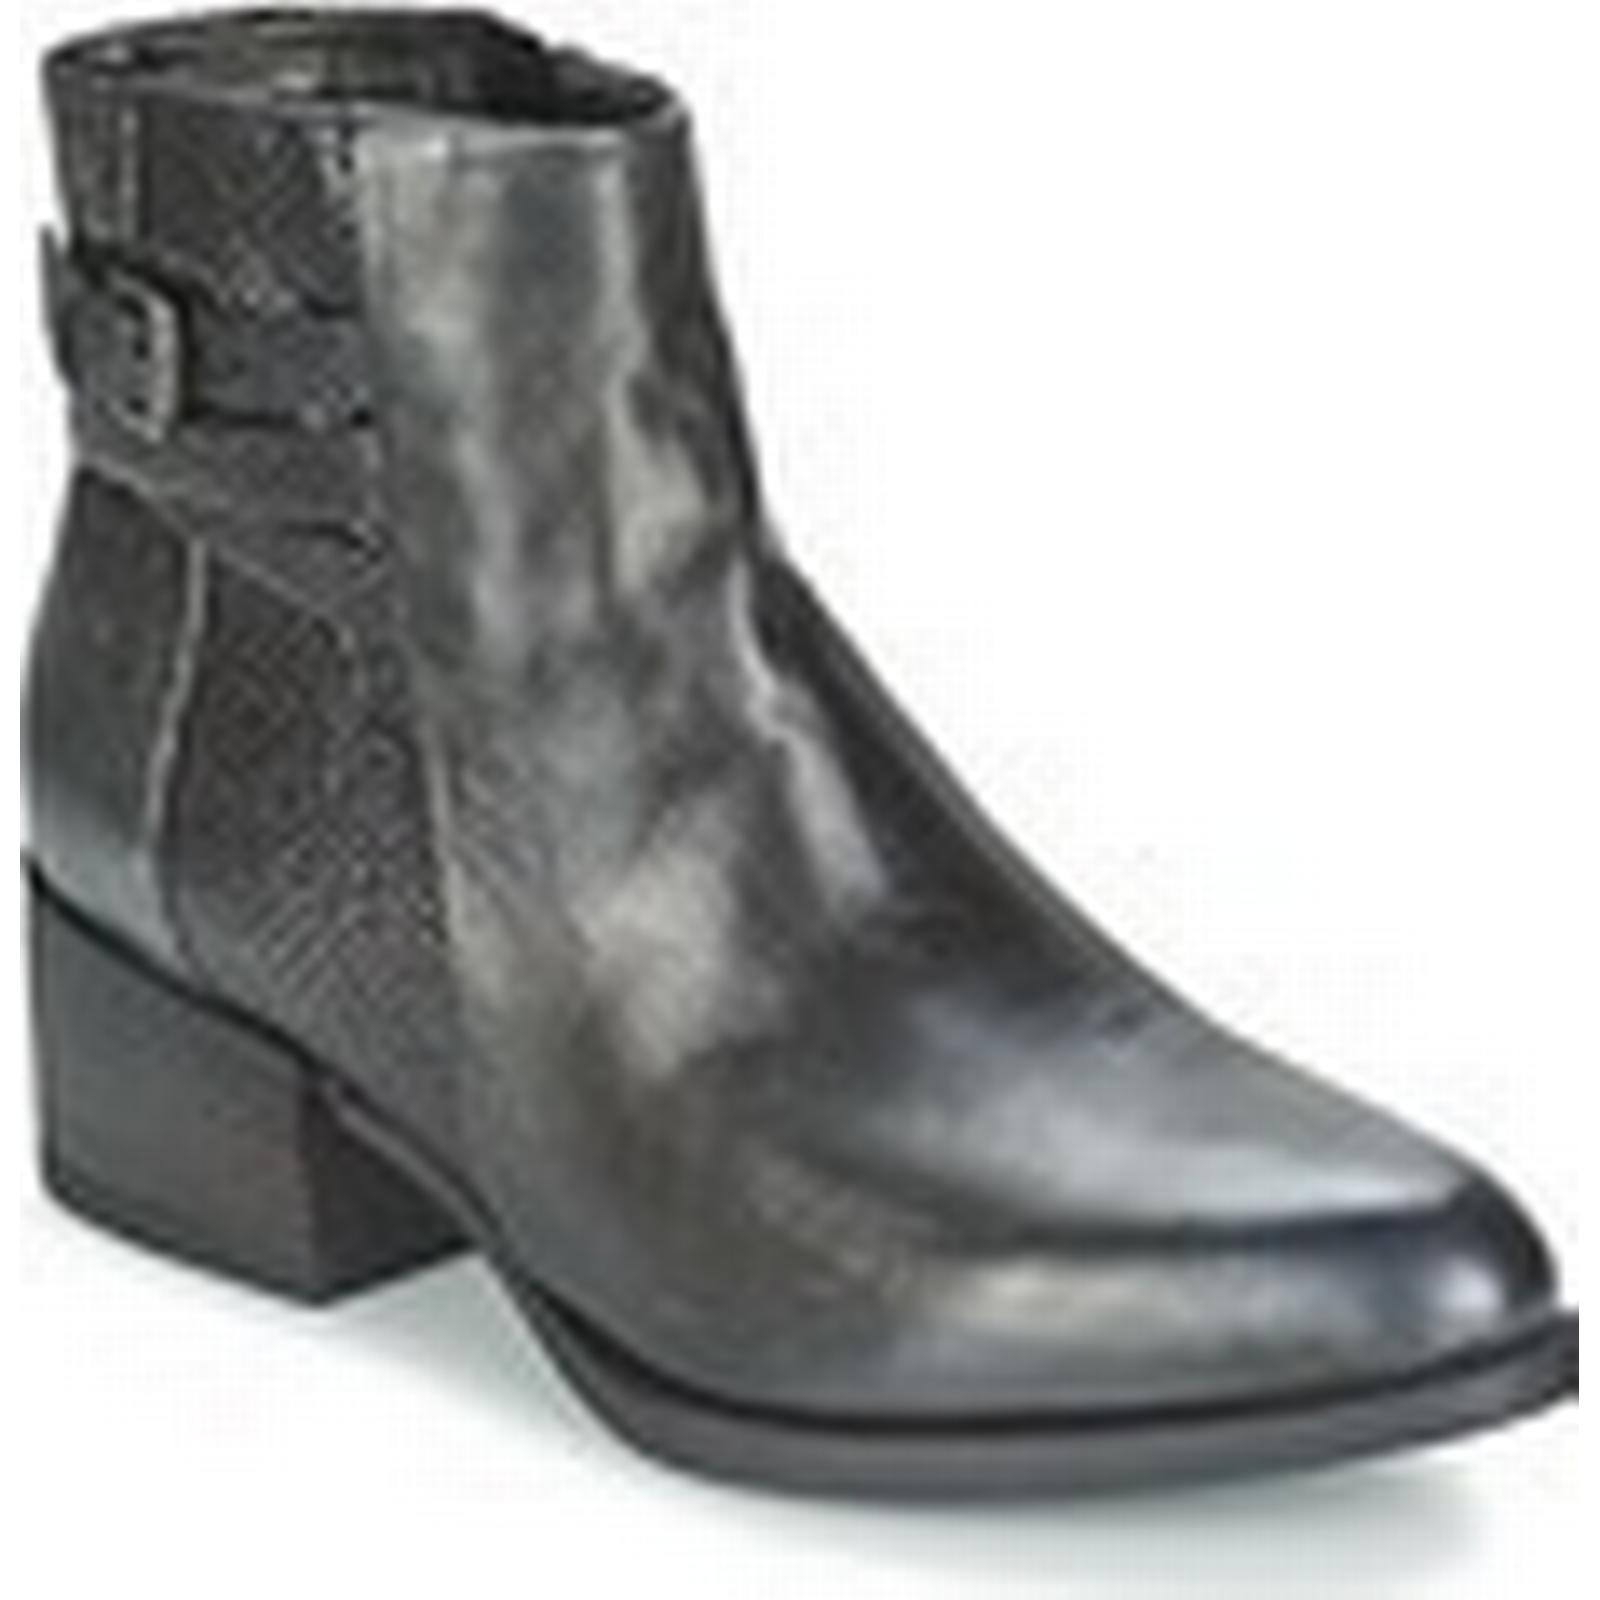 ccf69f4a4 Mjus LIVNO women  x27 s women  x27 s women  x27 s Low Ankle Boots in Black  fa8388